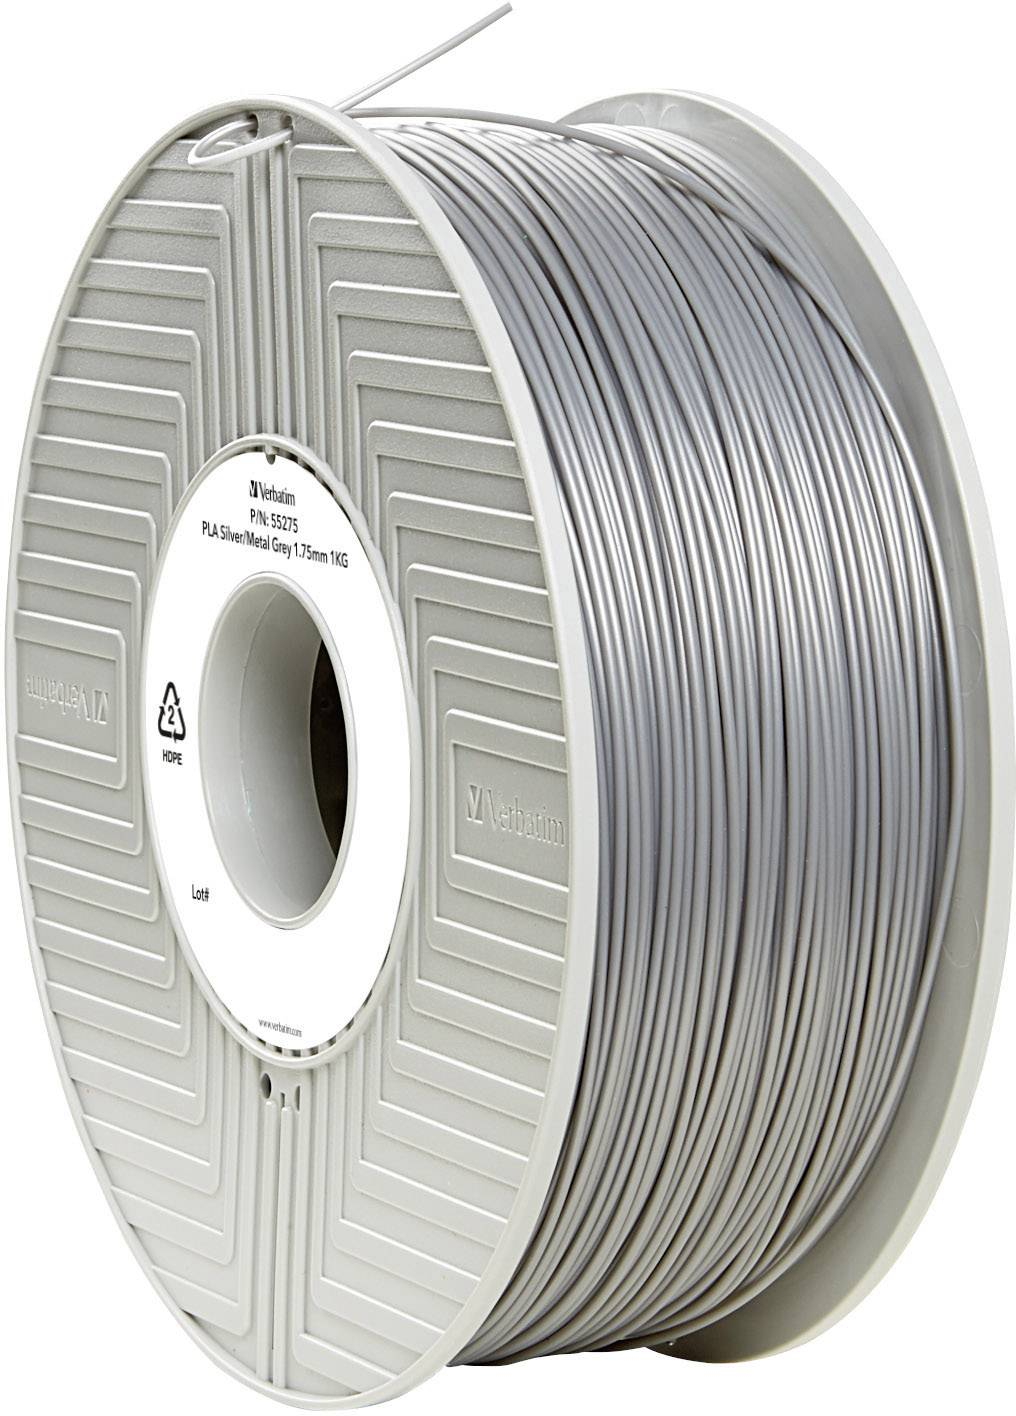 White 3d Printer Consumables Verbatim 55268 Pla Filament 1.75mm 1kg